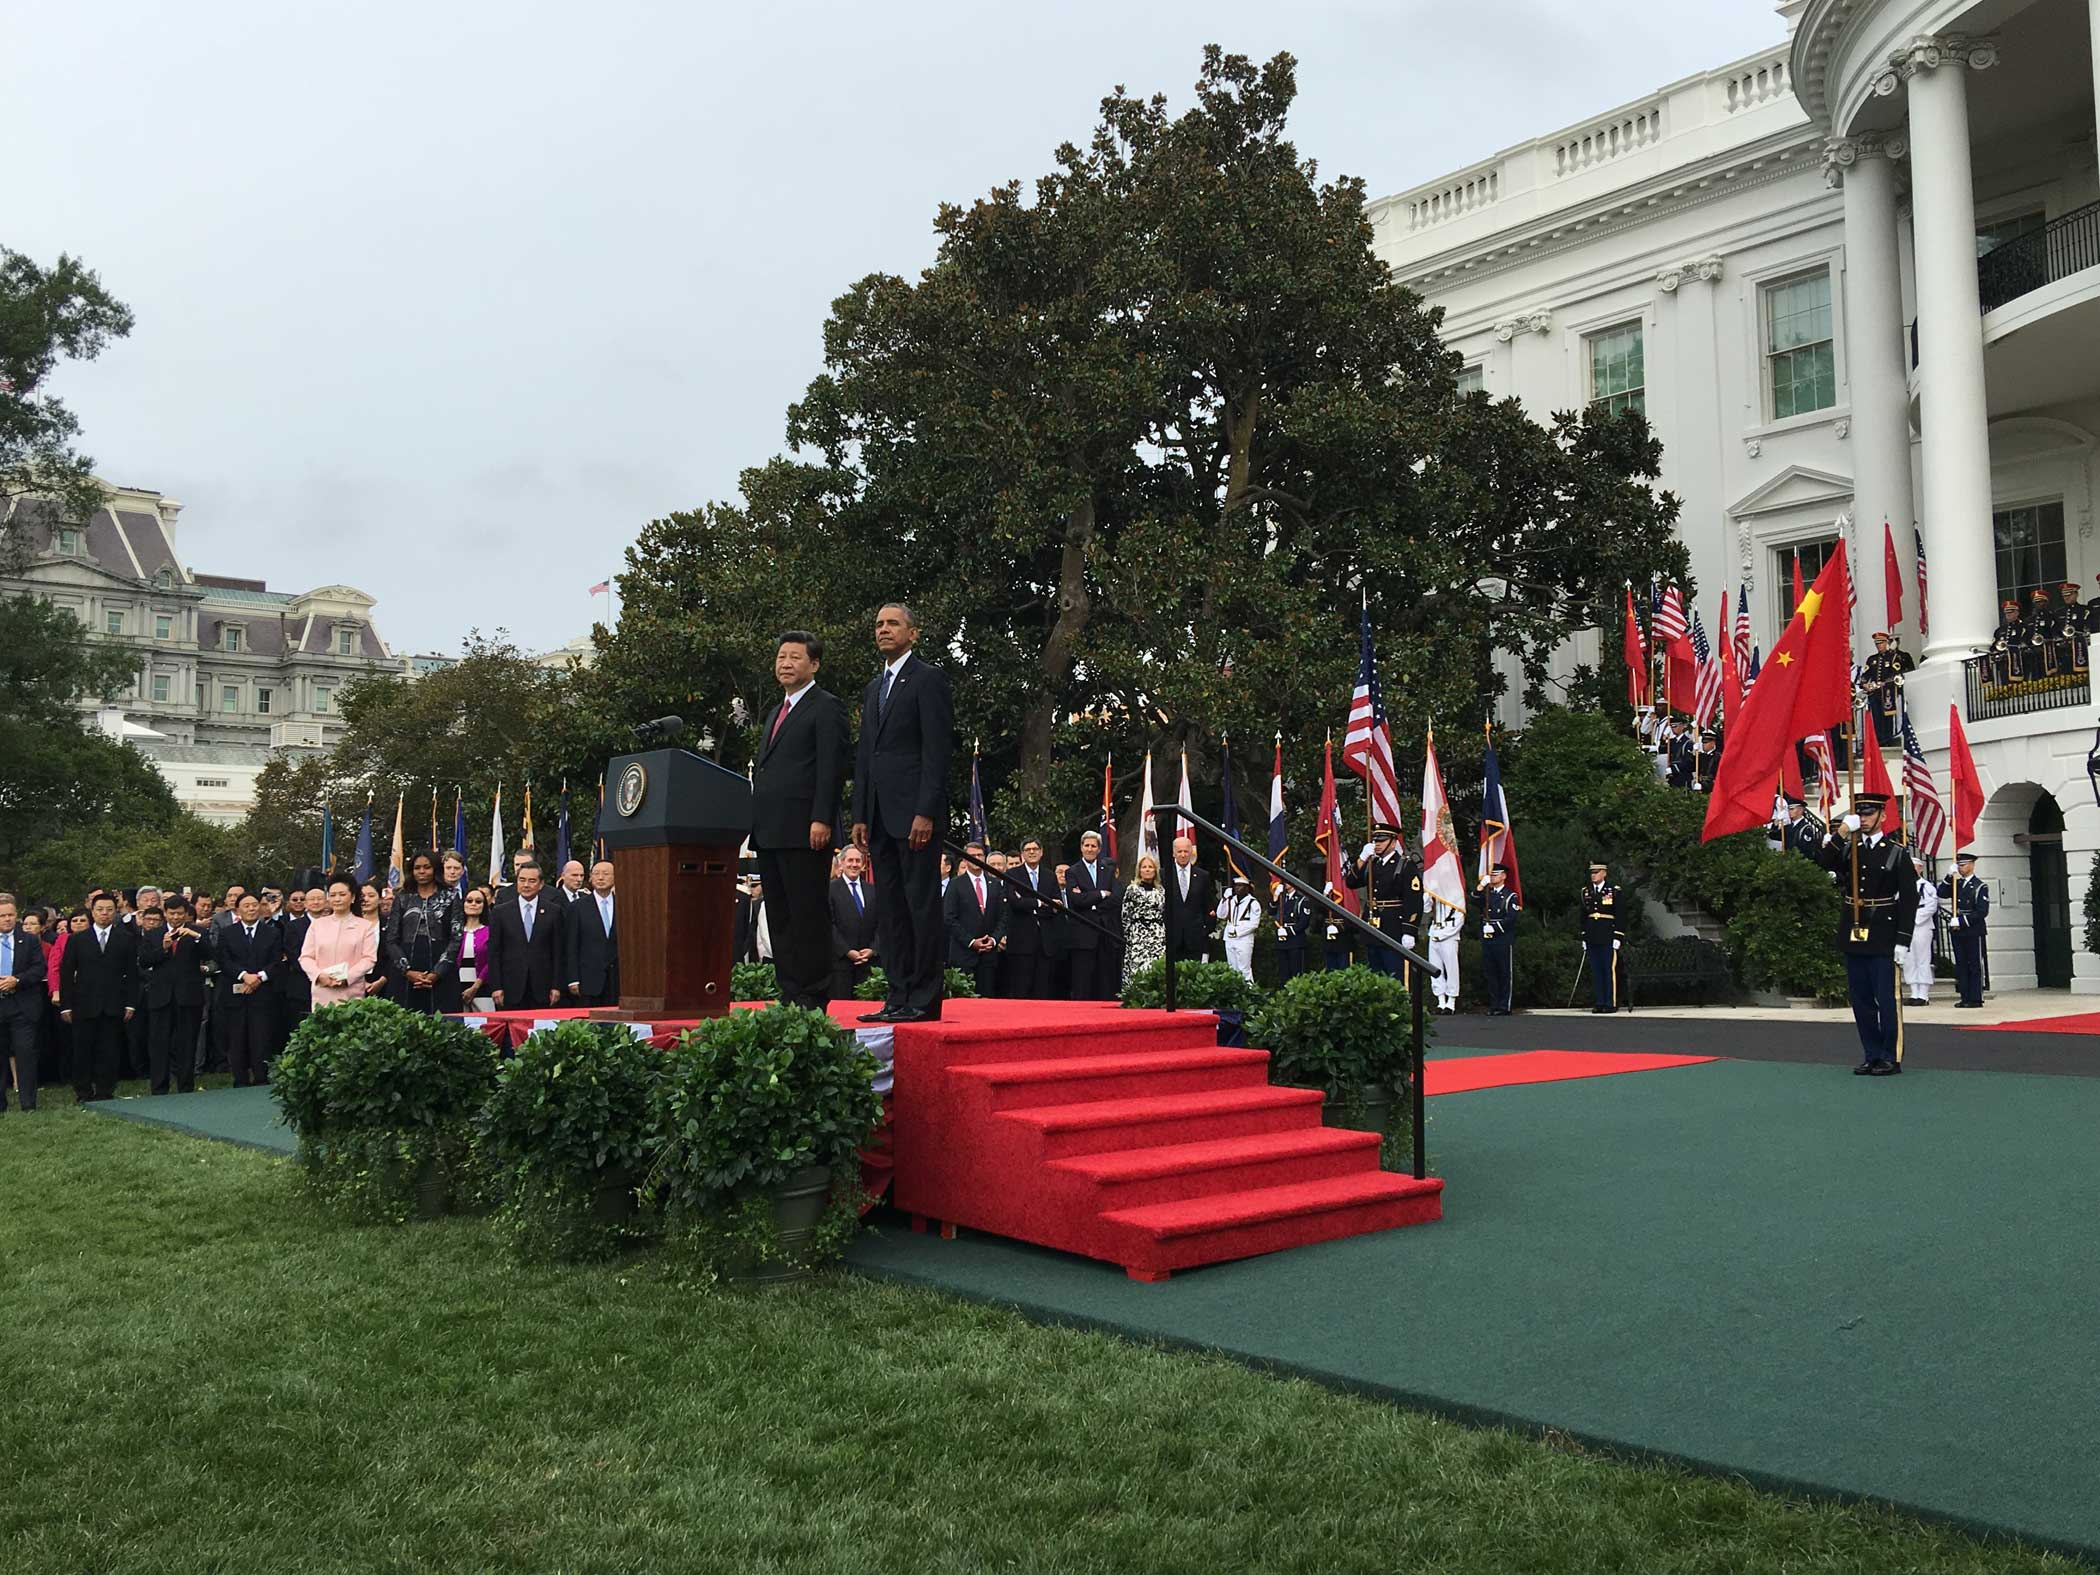 Chinese President Xi Jinping at the start of his state visit to the U.S. Sept. 25, 2015.